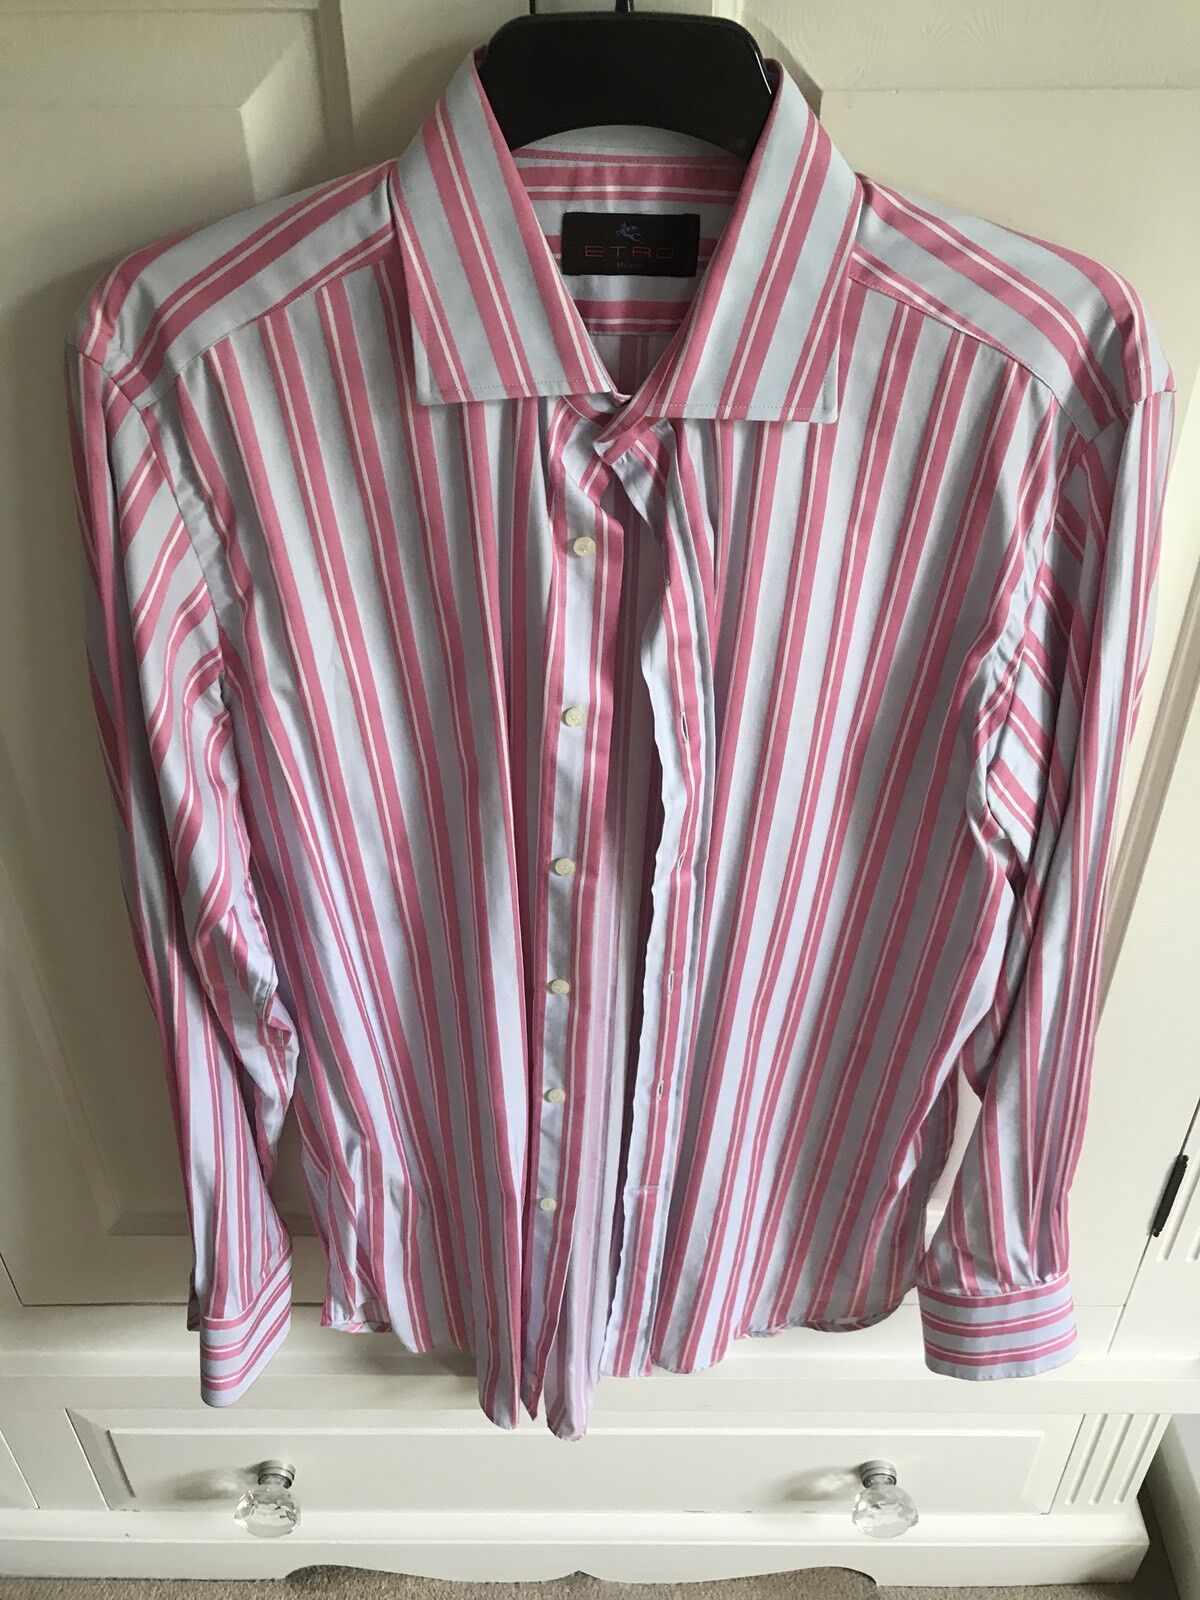 e1c2885f GENTS ETRO MILANO SHIRT LONG SIZE 42 SLEEVED oghjrs26240-Casual ...